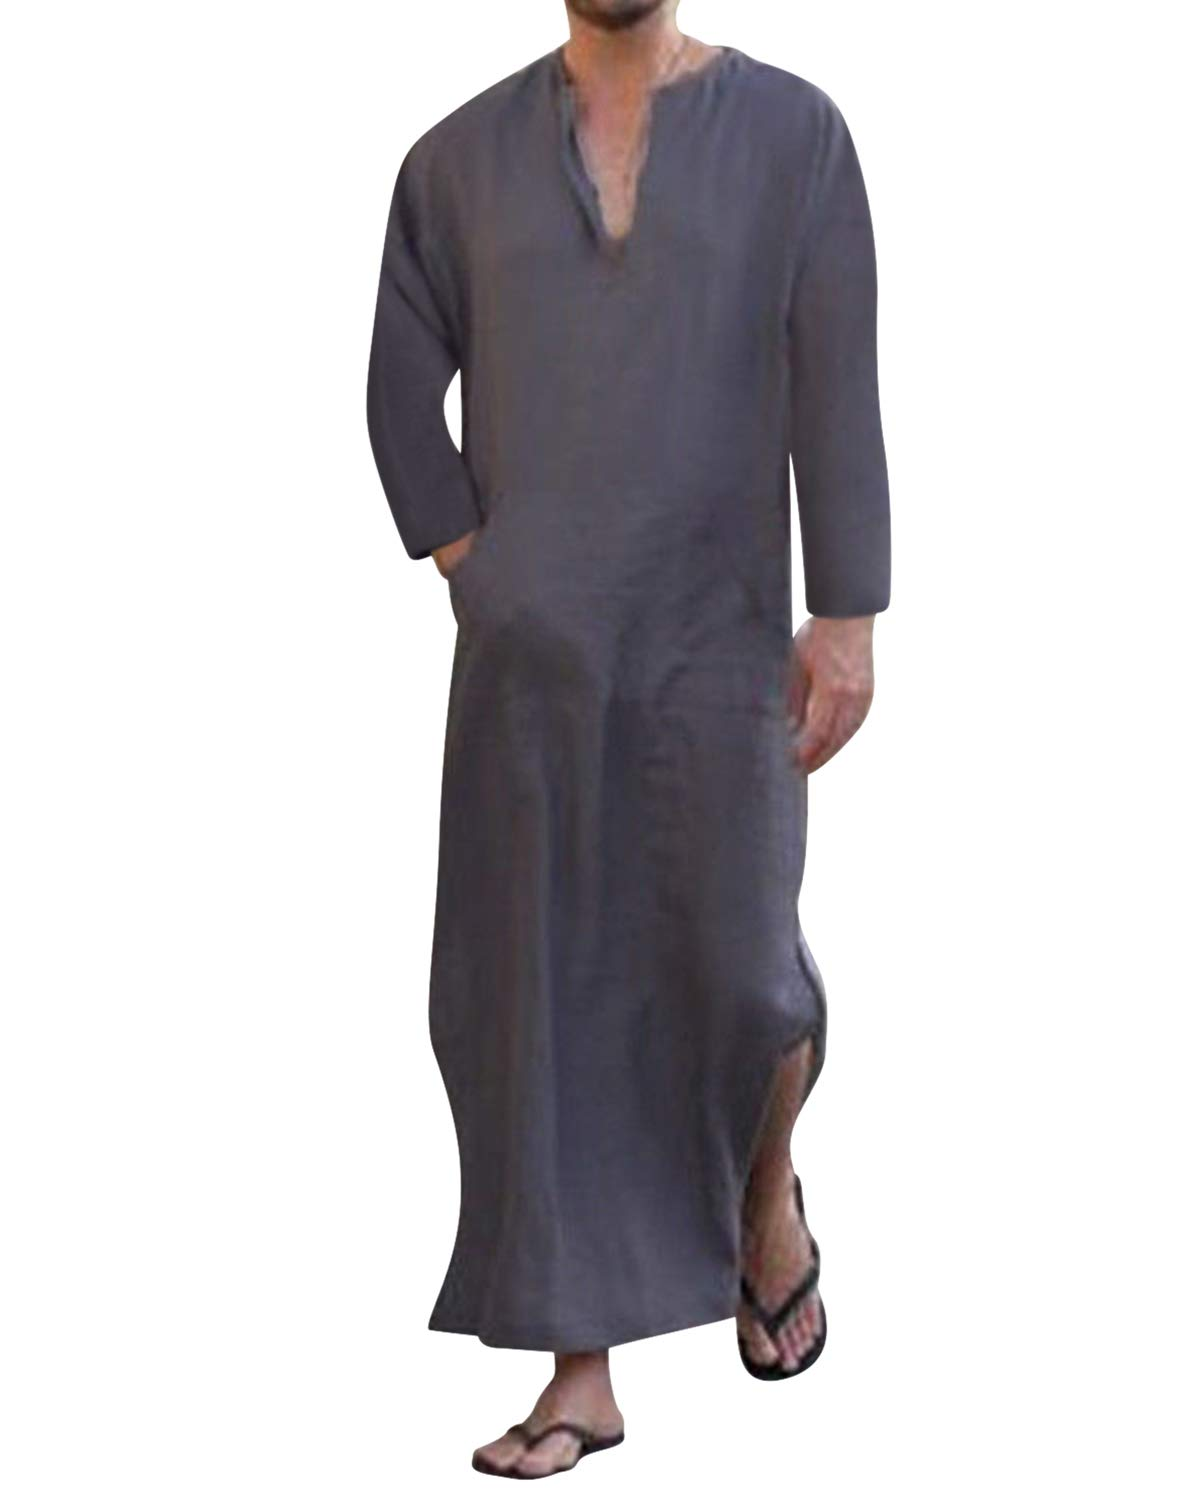 Jacansi Men's V-neck Short Sleeve Side Split Kaftan Cotton Muslim Arabic Thobe S-3XL Jacansi-17CM0000096